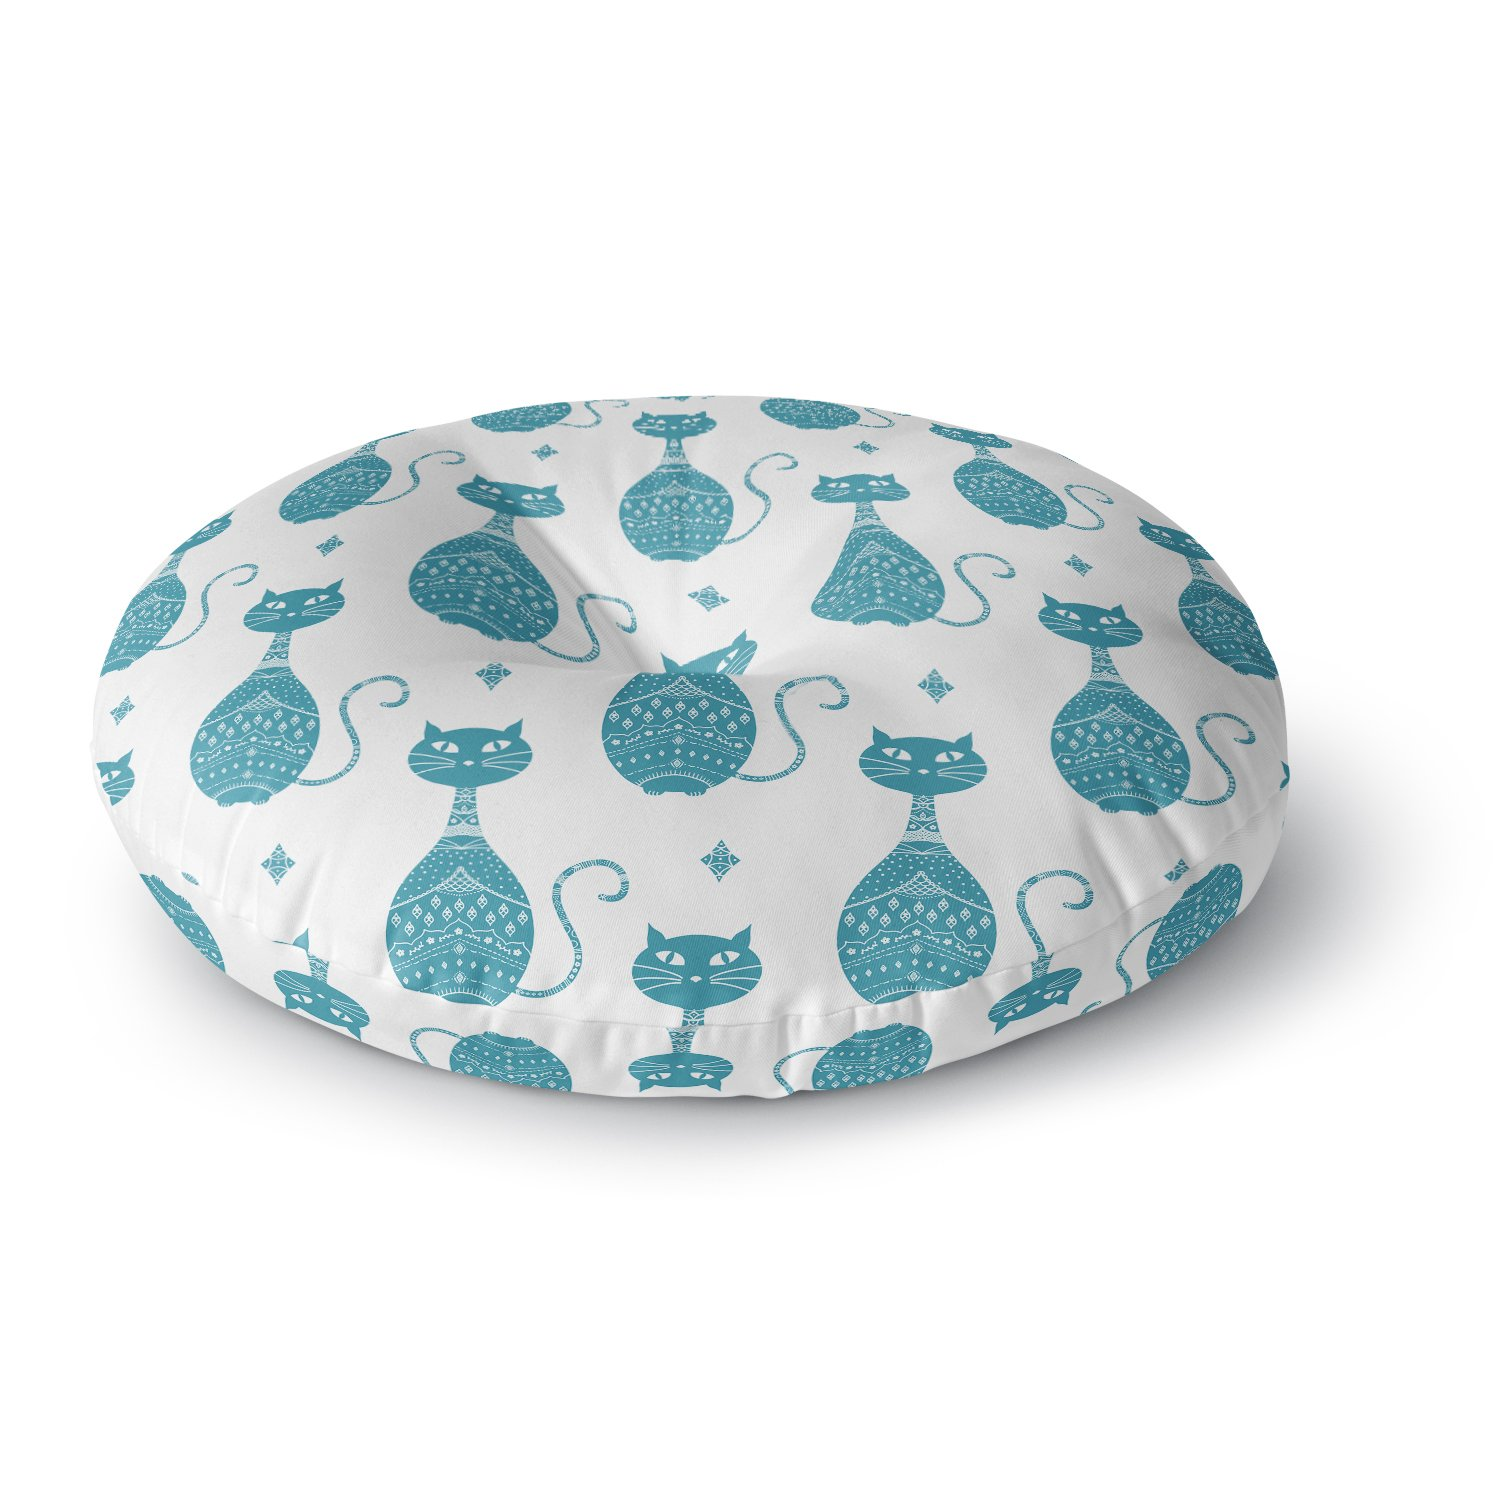 KESS InHouse Cristina Bianco Design Blue Cat Pattern White Animal Round Floor Pillow, 26''